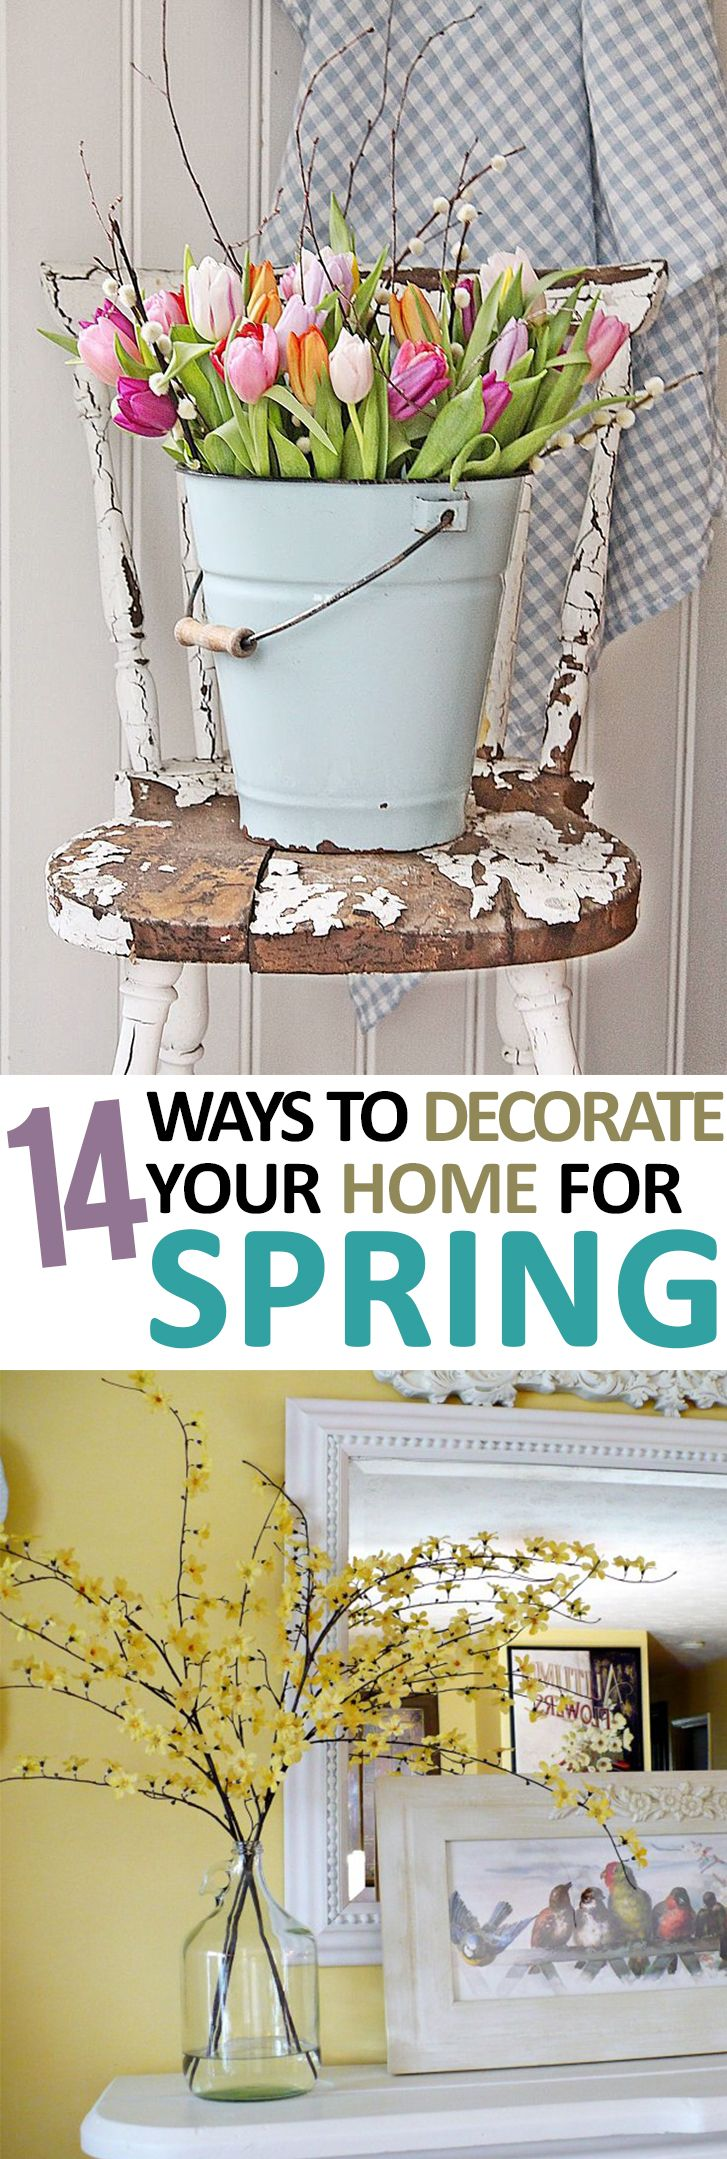 How to decorate your home for spring.